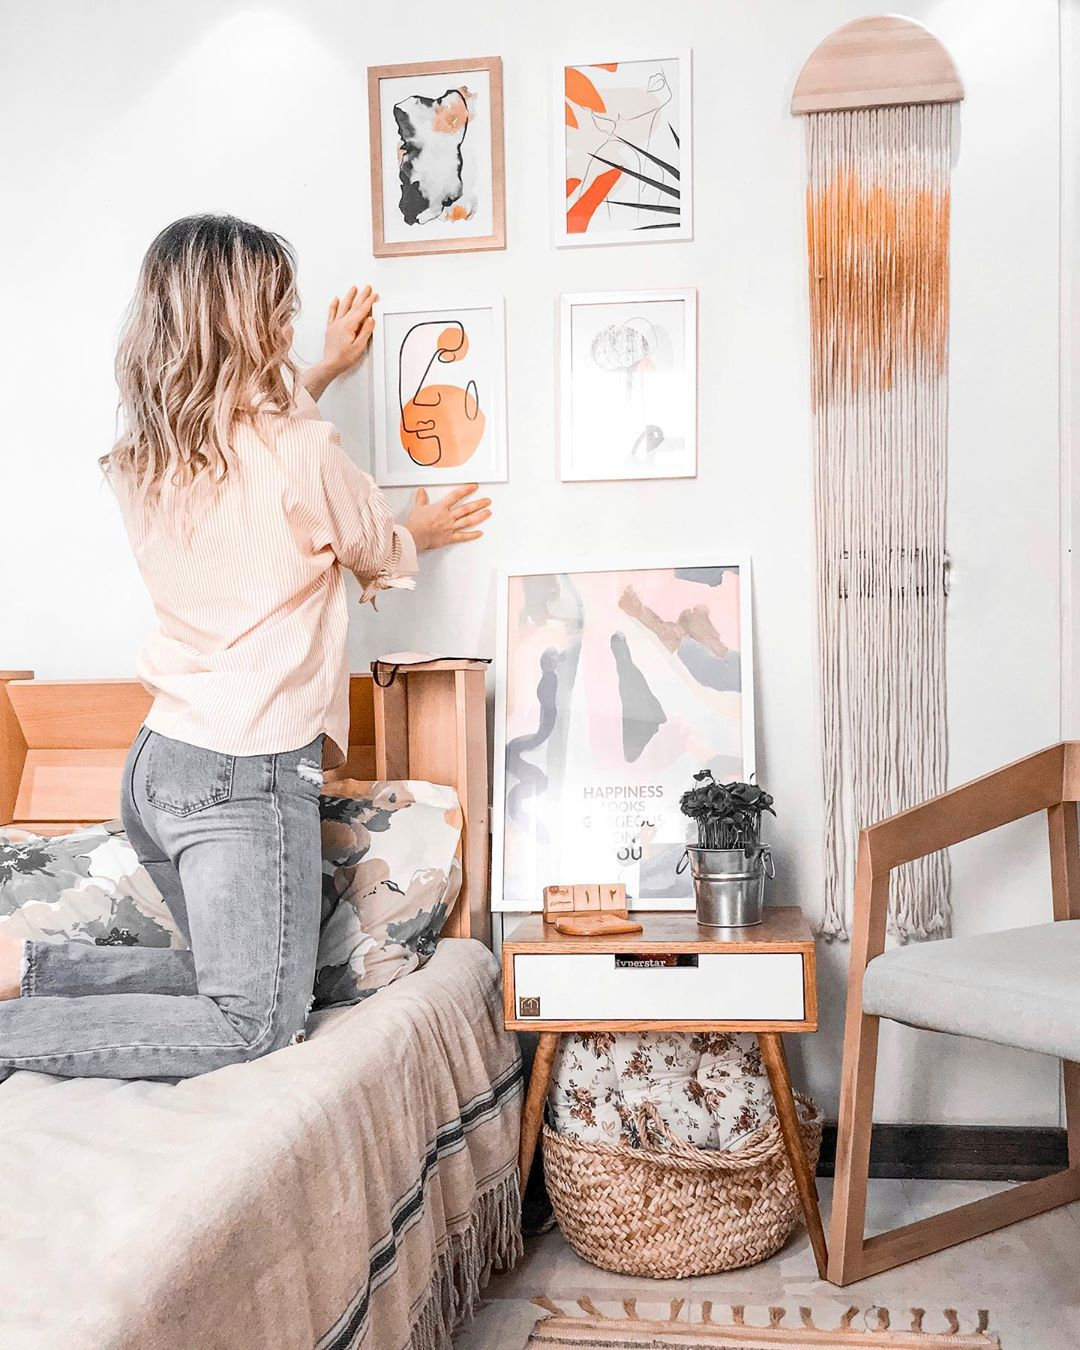 15 Best Wall Decor Ideas For 2020 You Should Try Out | Decoholic Throughout Current Blended Fabric Wall Hangings With Hanging Accessories Included (View 15 of 20)